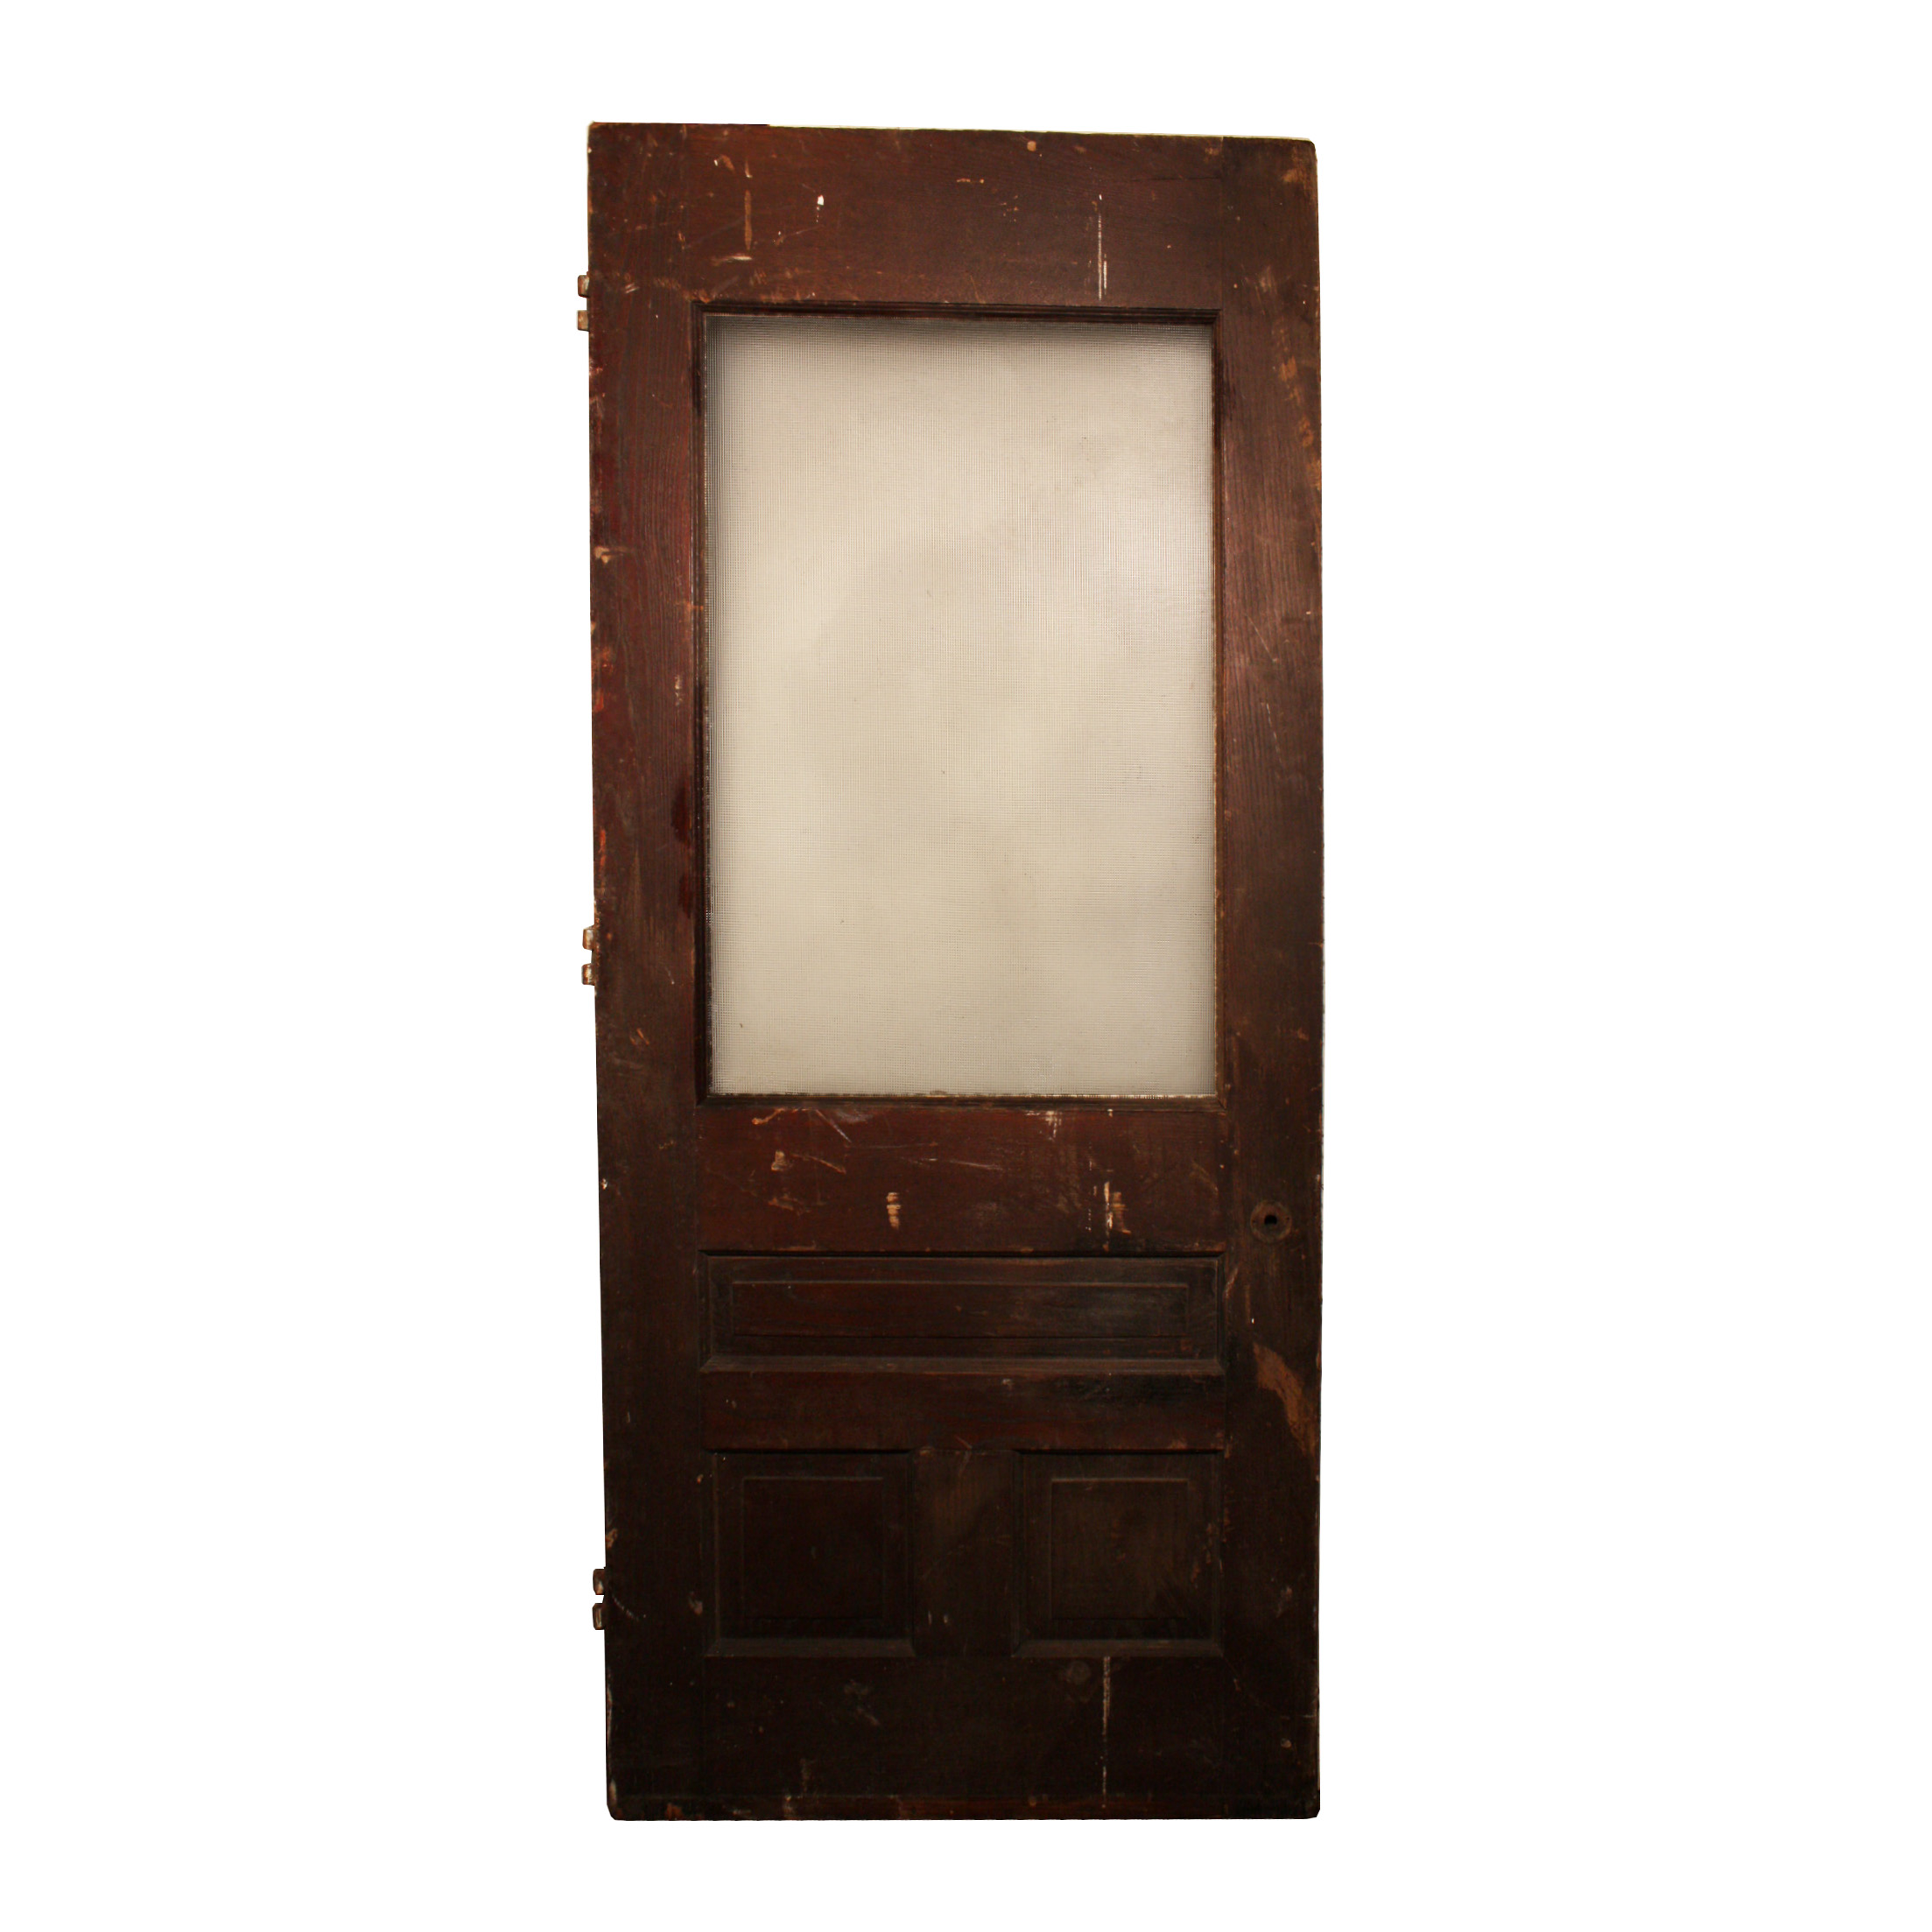 dating antique doors A painting expert shows you how to properly apply paint to a door in this free video on updating old doors expert: grady johnson bio: grady johnson is an ac.